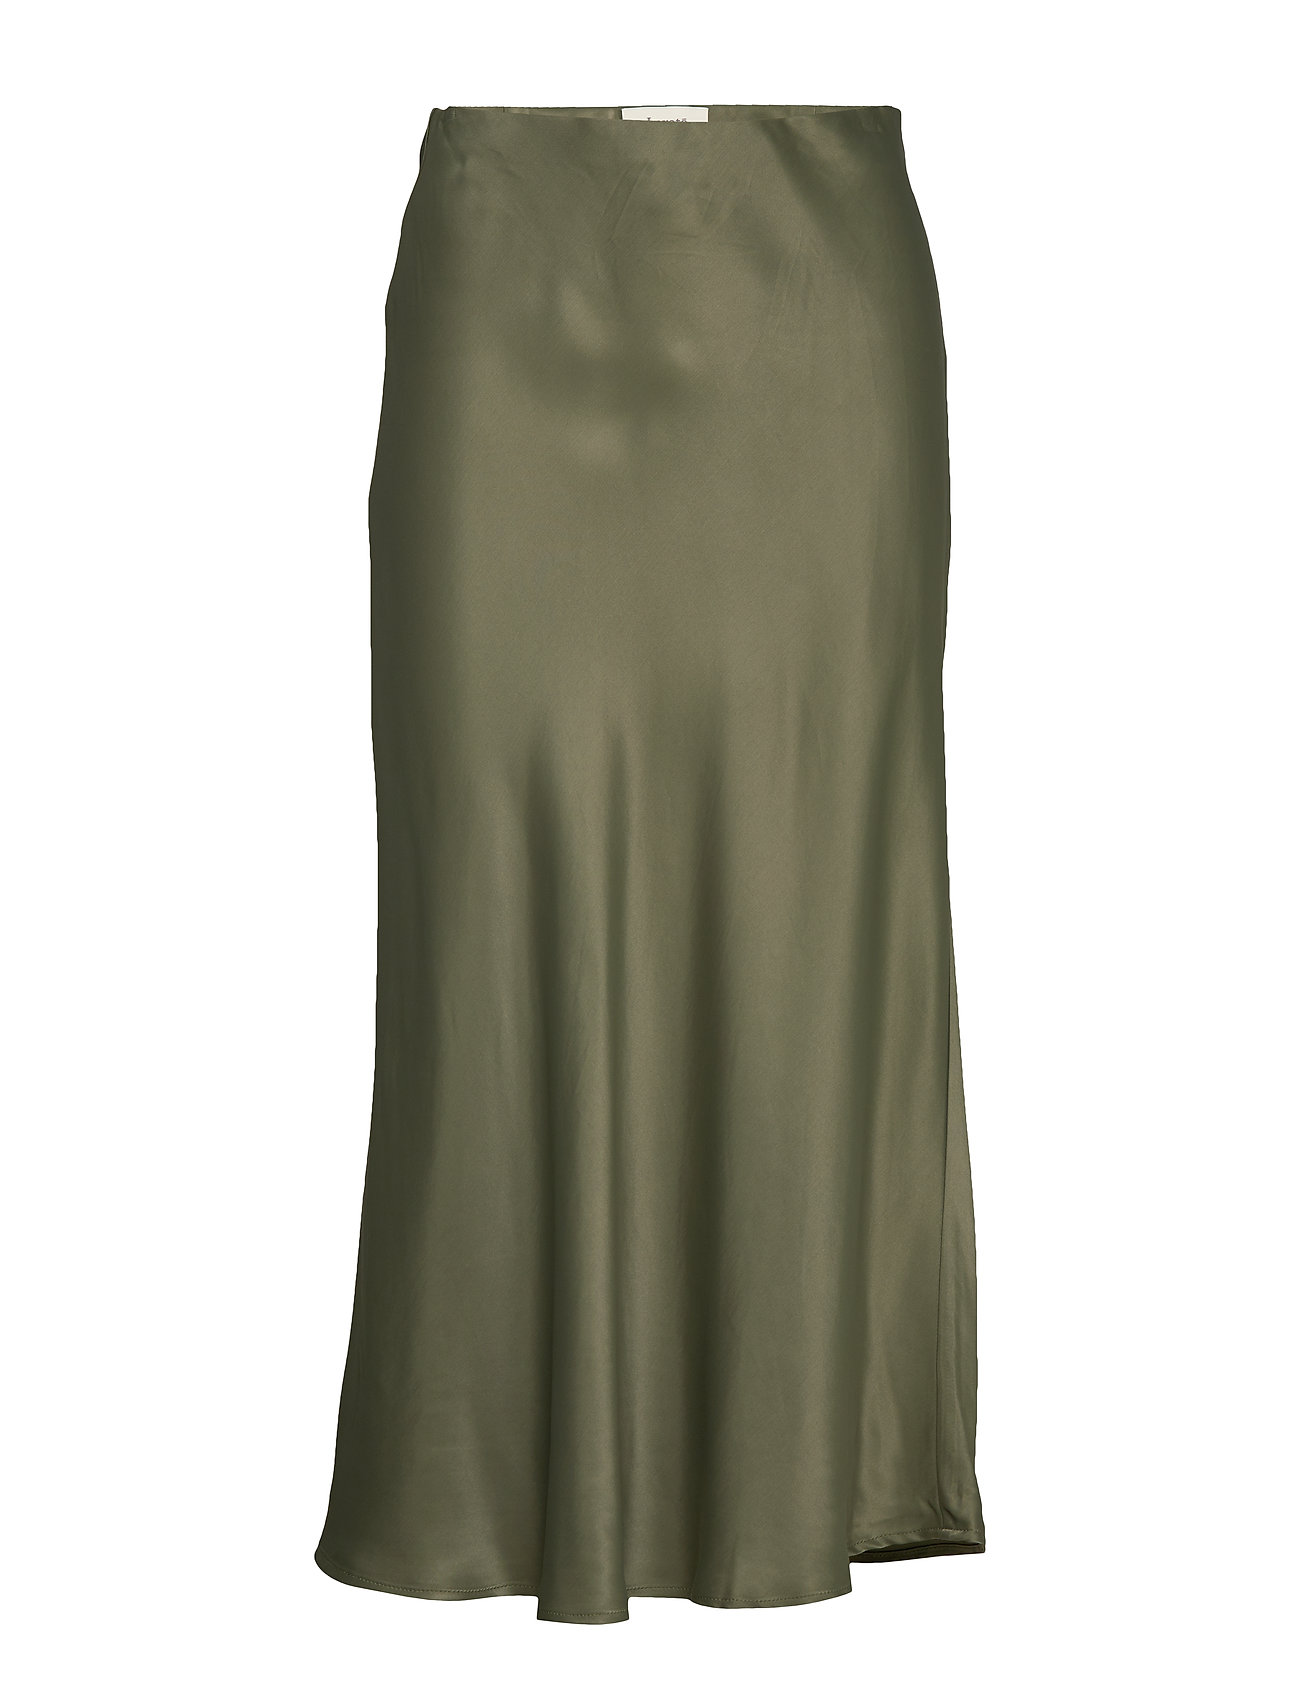 Levete Room LR-ISA SOLID - L704 - DUSTY OLIVE